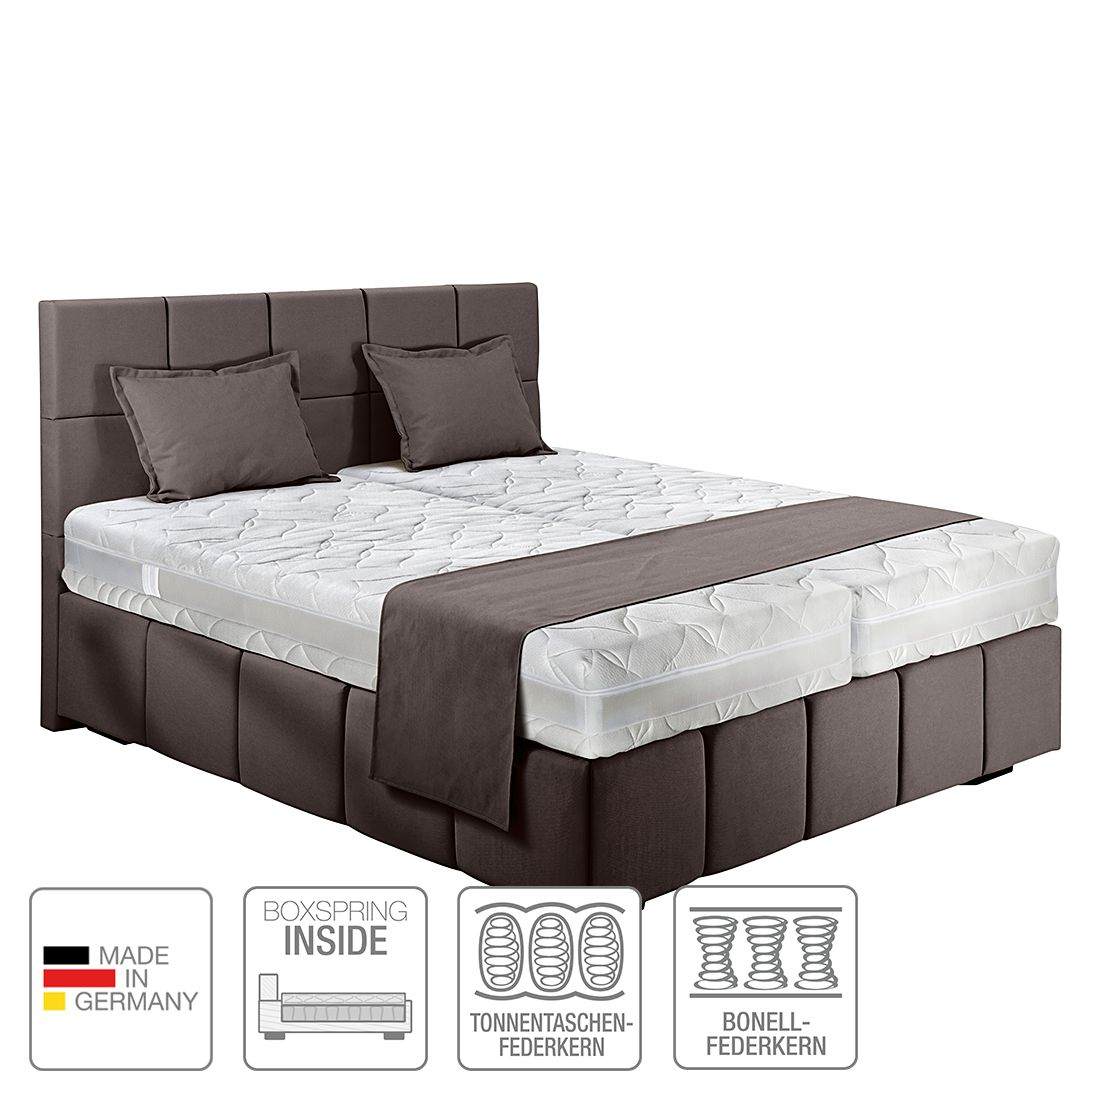 boxspring inside bett olena webstoff 160 x 200cm h3. Black Bedroom Furniture Sets. Home Design Ideas